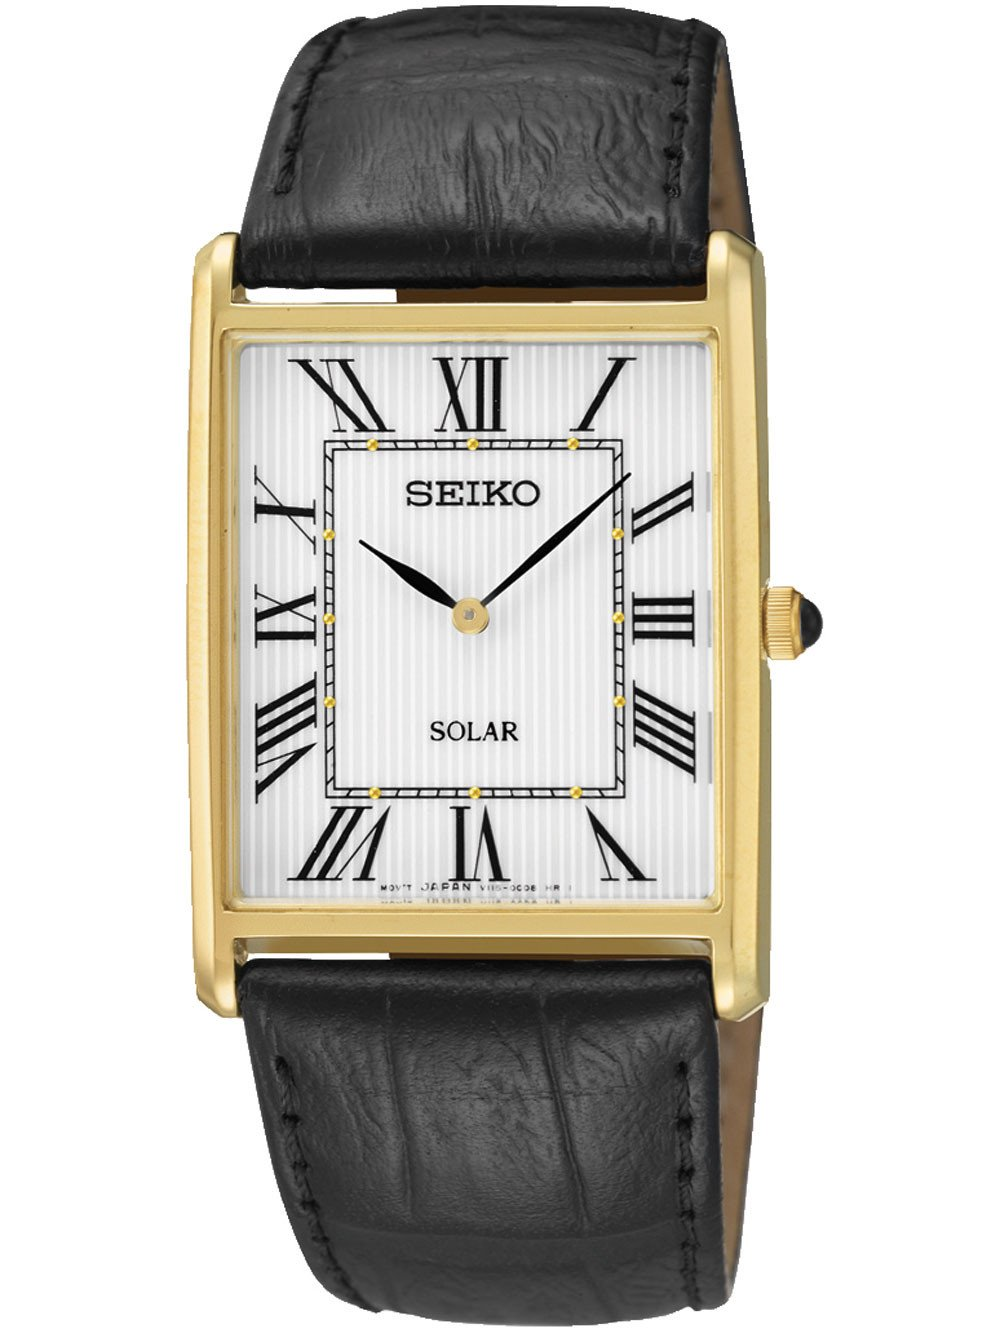 Seiko SUP880P1 Solar Herrenuhr eckig golden 28mm 30M